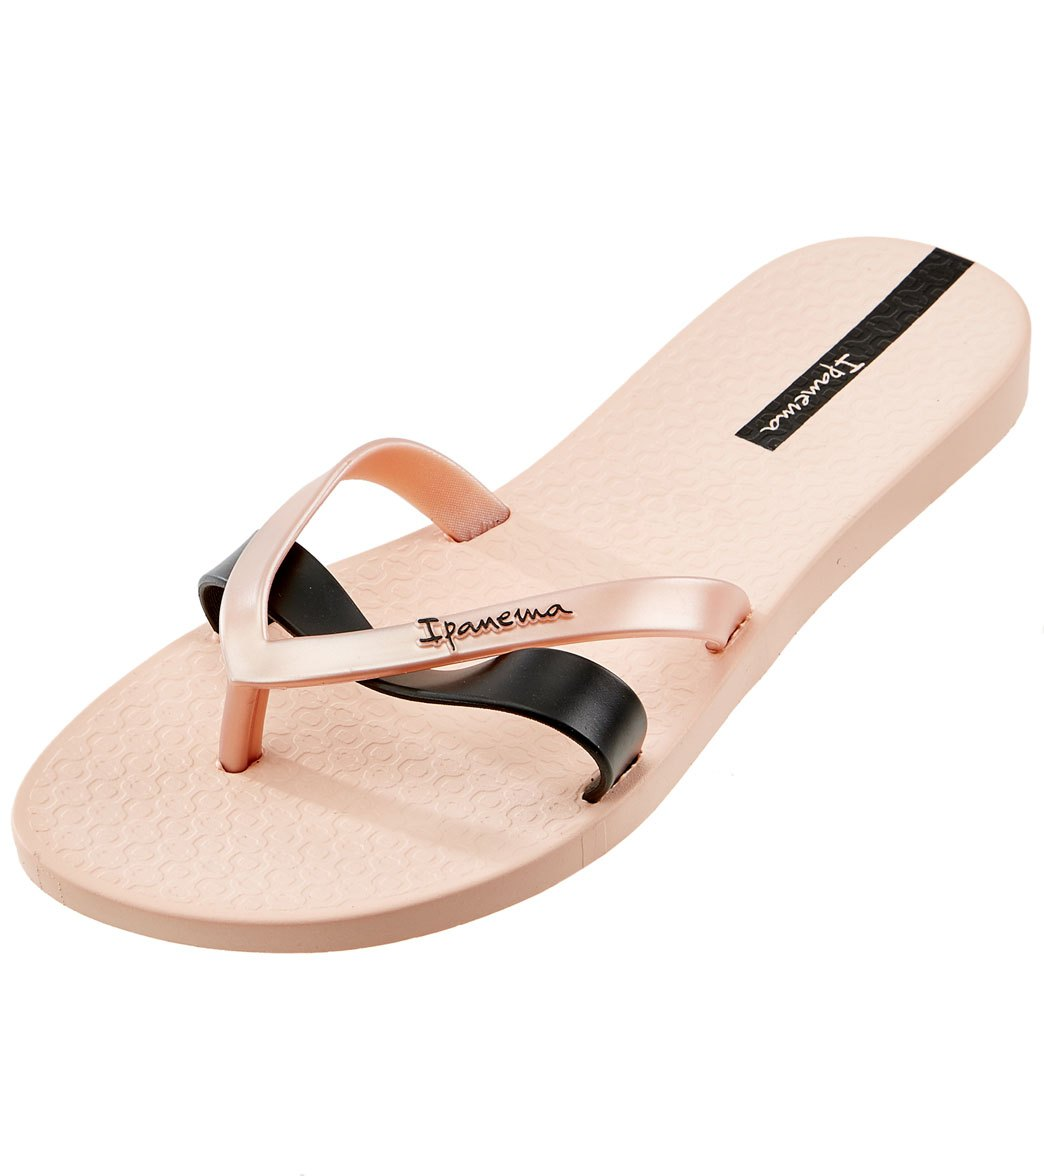 4d1cfd5d8af Ipanema Women s Kirei Flip Flop at SwimOutlet.com